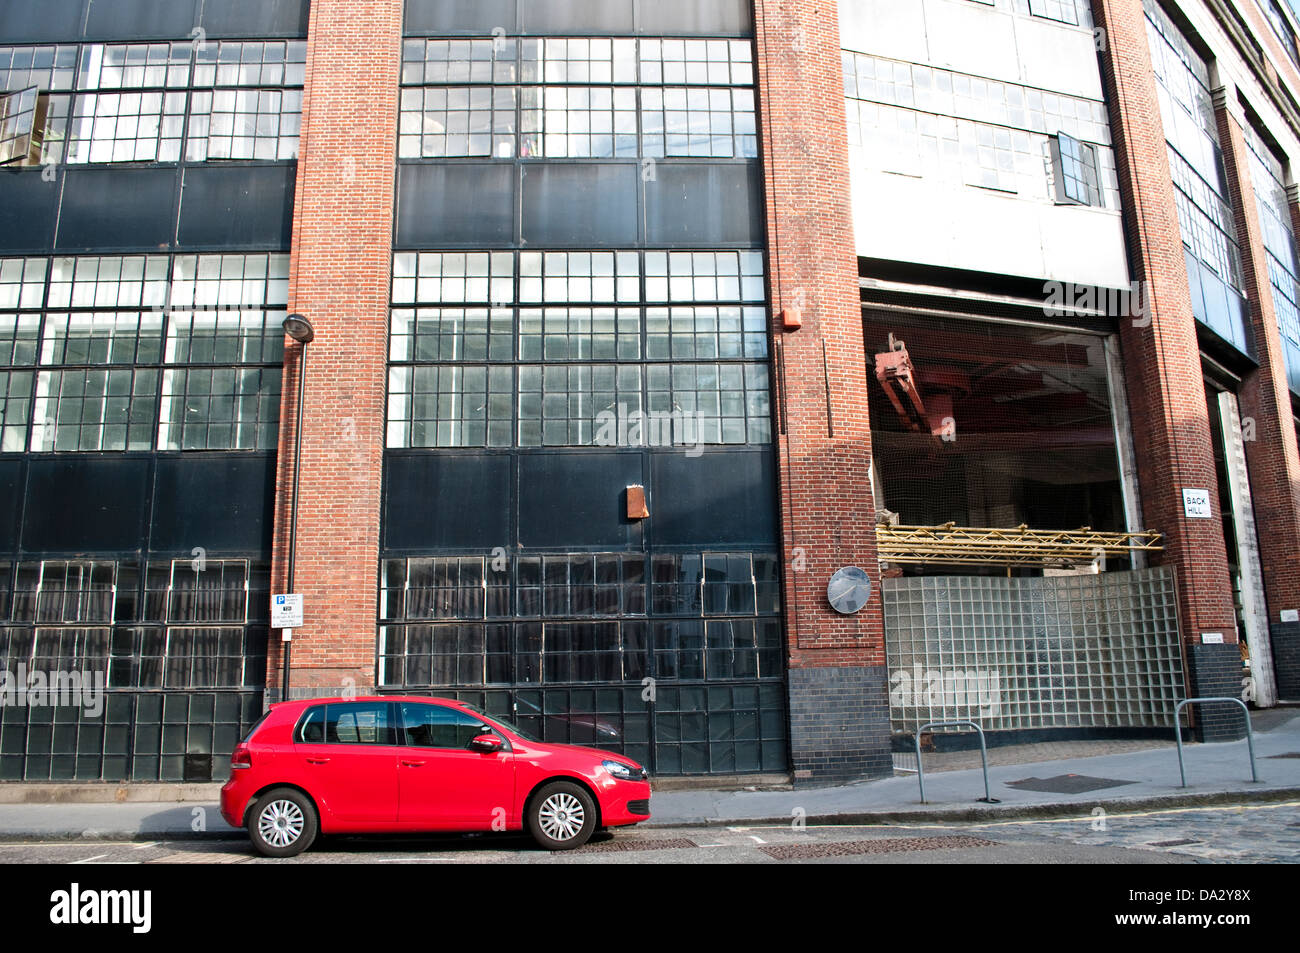 Red car and Disused building, former London College of Printing, Back Hill, Clerkenwell, London, UK - Stock Image